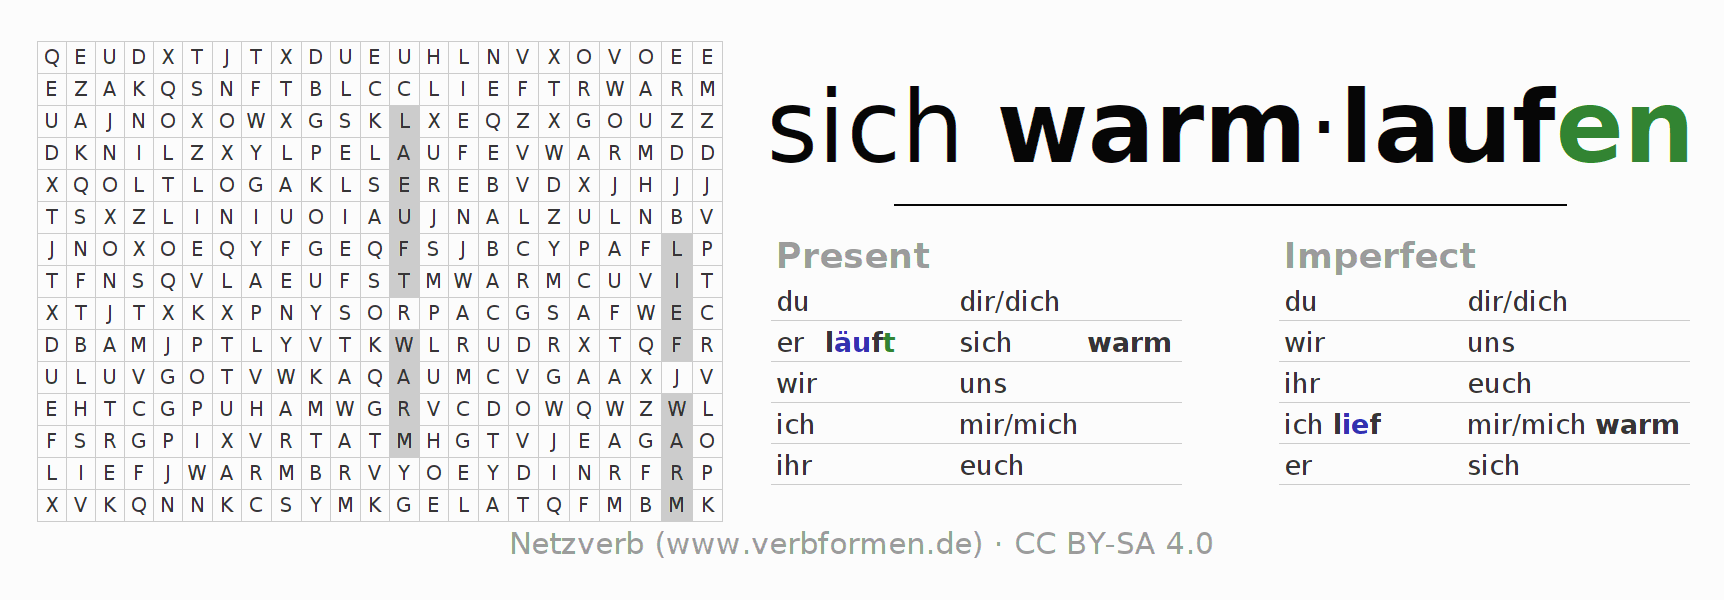 Word search puzzle for the conjugation of the verb sich warmlaufen